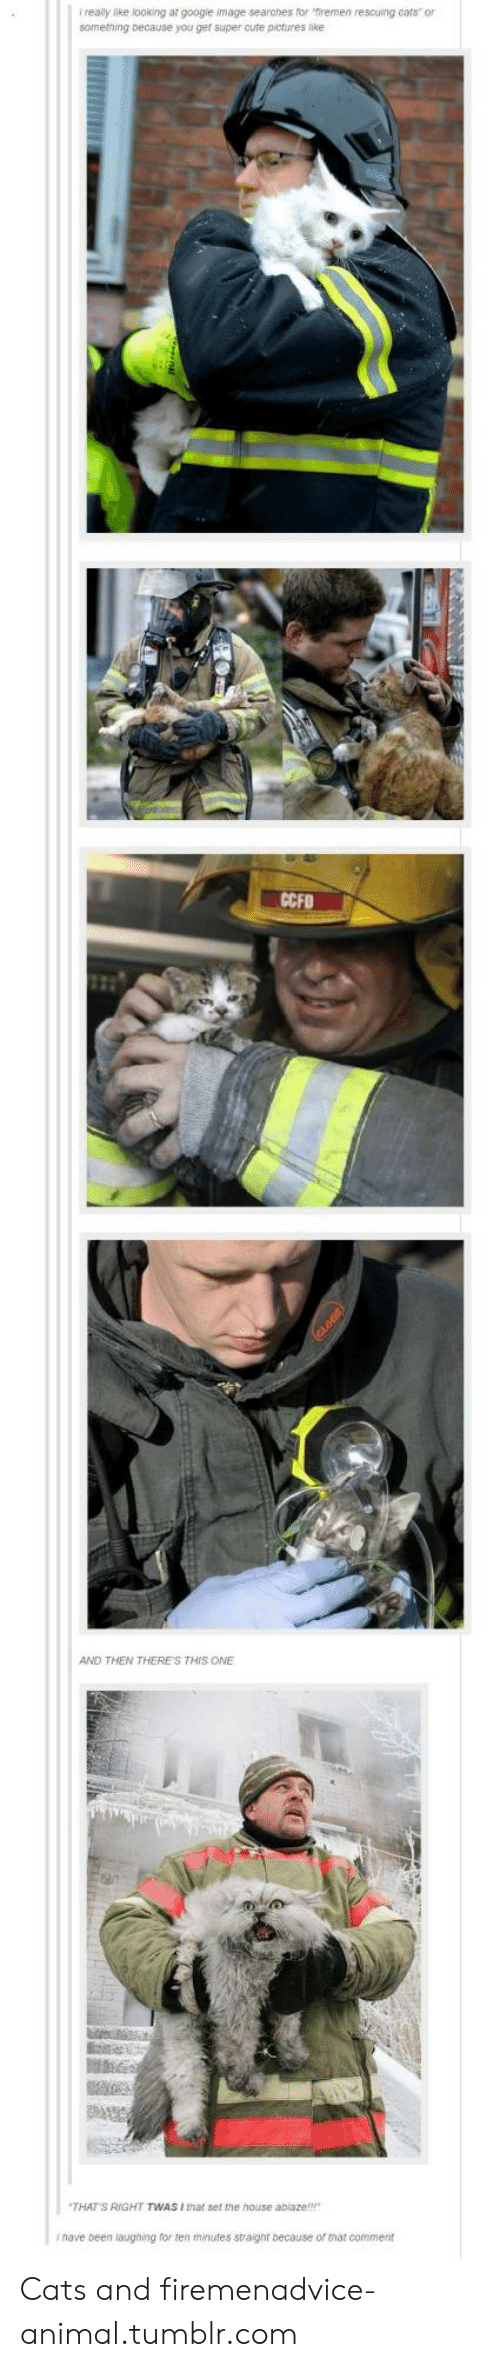 Googie: realy like looking at googie image searches for firemen rescuing cats or  something because you get super cute pictures ike  CCFD  AND THEN THERE'S THIS ONE  THAT S RIGHT TWAS I that set the house ablaze!!  ihave been laughing for ten minutes straight because of that comment Cats and firemenadvice-animal.tumblr.com